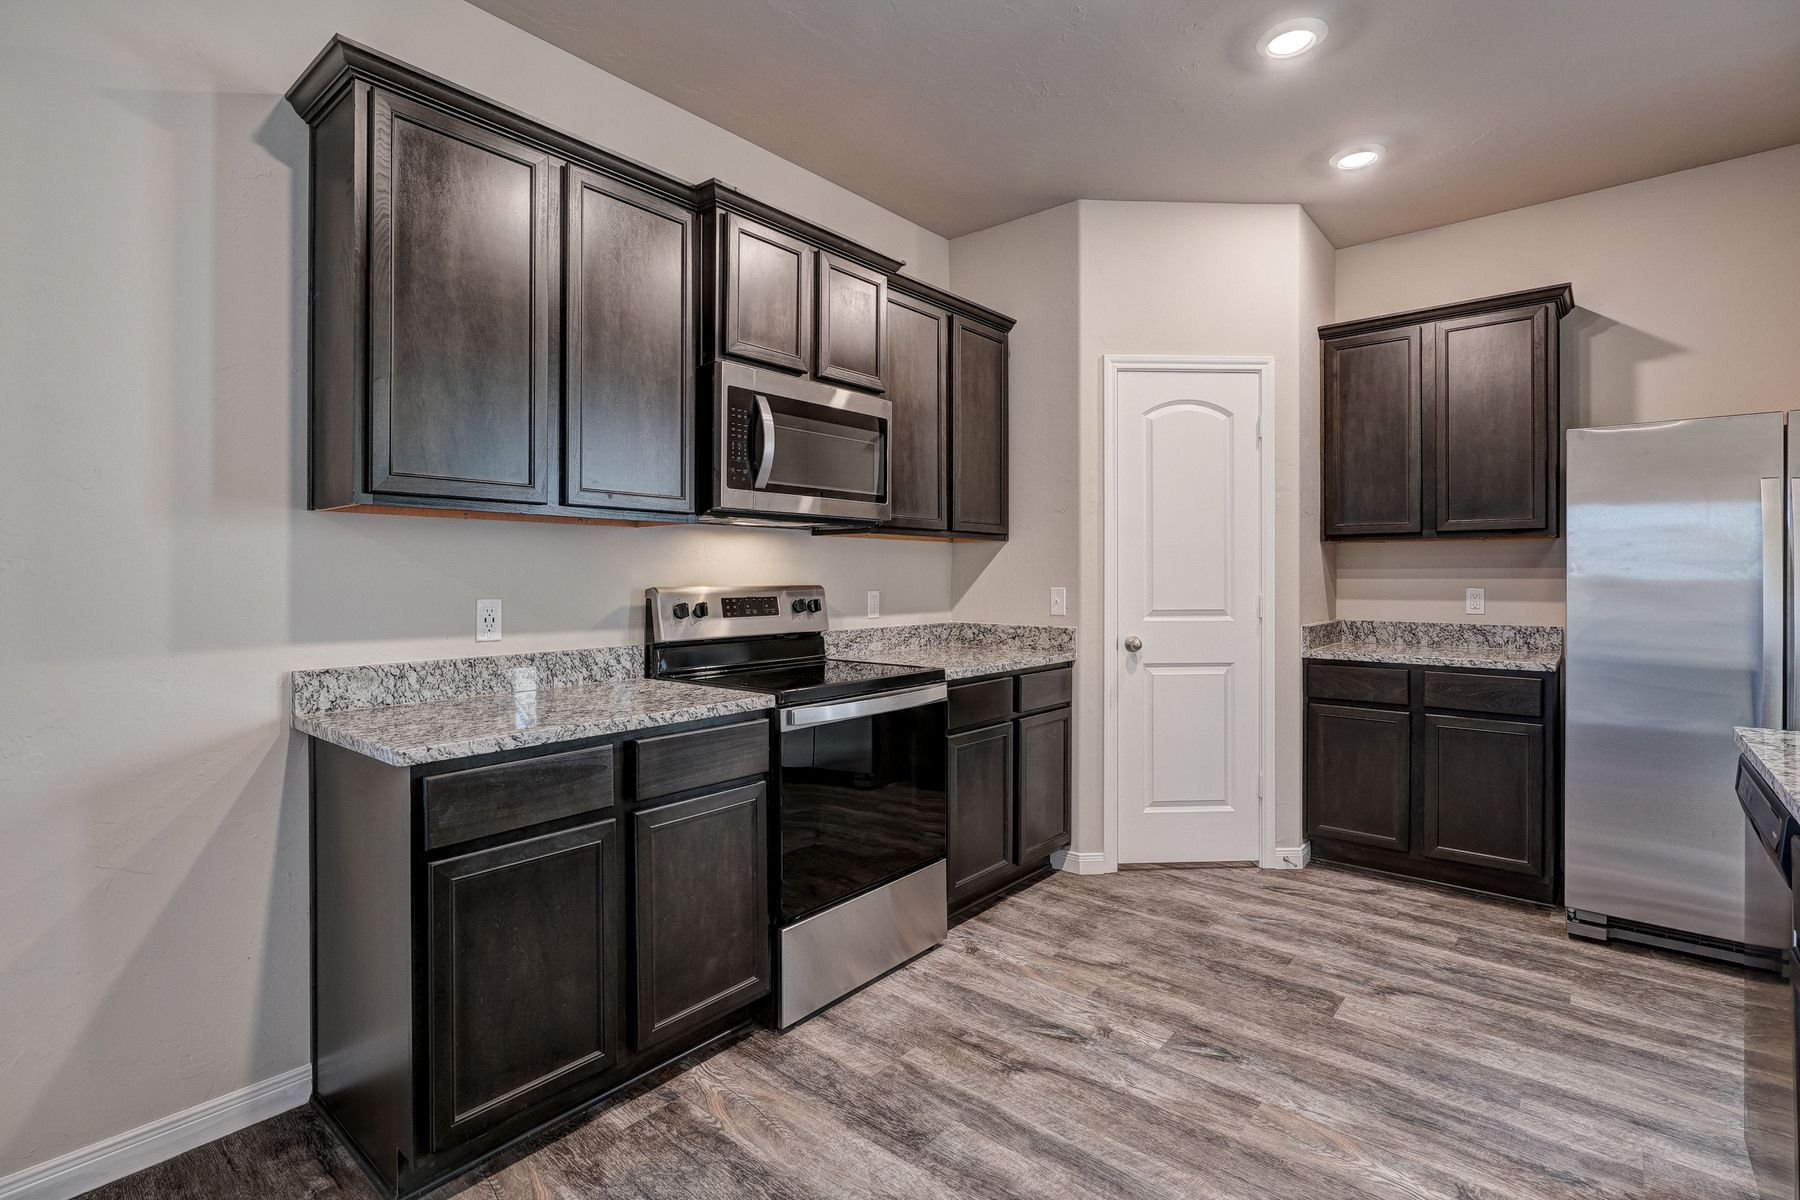 Kitchen featured in the Keaton By LGI Homes in Oklahoma City, OK